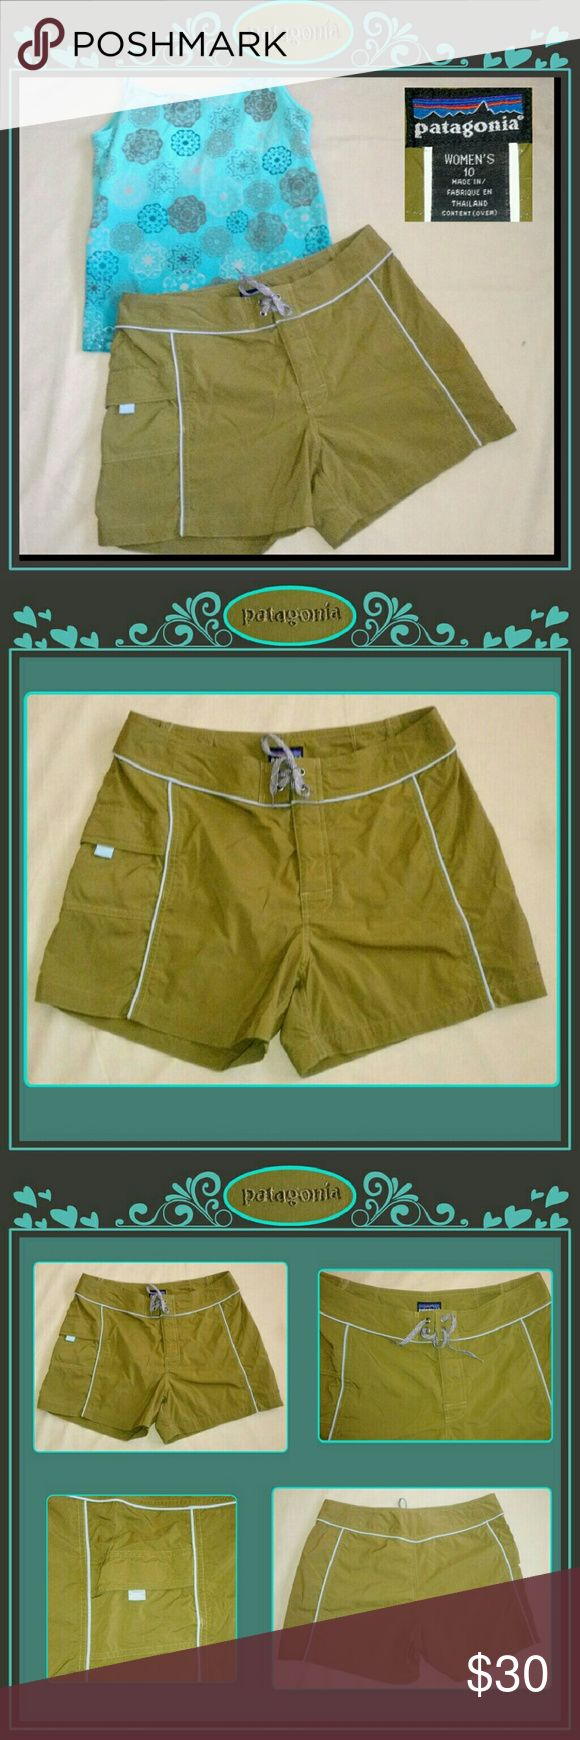 """??Sz10 women's Patagonia 4"""" board shorts ?? Women's size 10 board/ swim shorts. These army green water shorts have contrast pale blue piping detail, a Velcro/tie waistband closure, & a single side cargo pockets with Velcro closure. New, never worn. Approx measurements: waist 15"""" flat, rise 10"""", & inseam 4"""" Patagonia Shorts"""